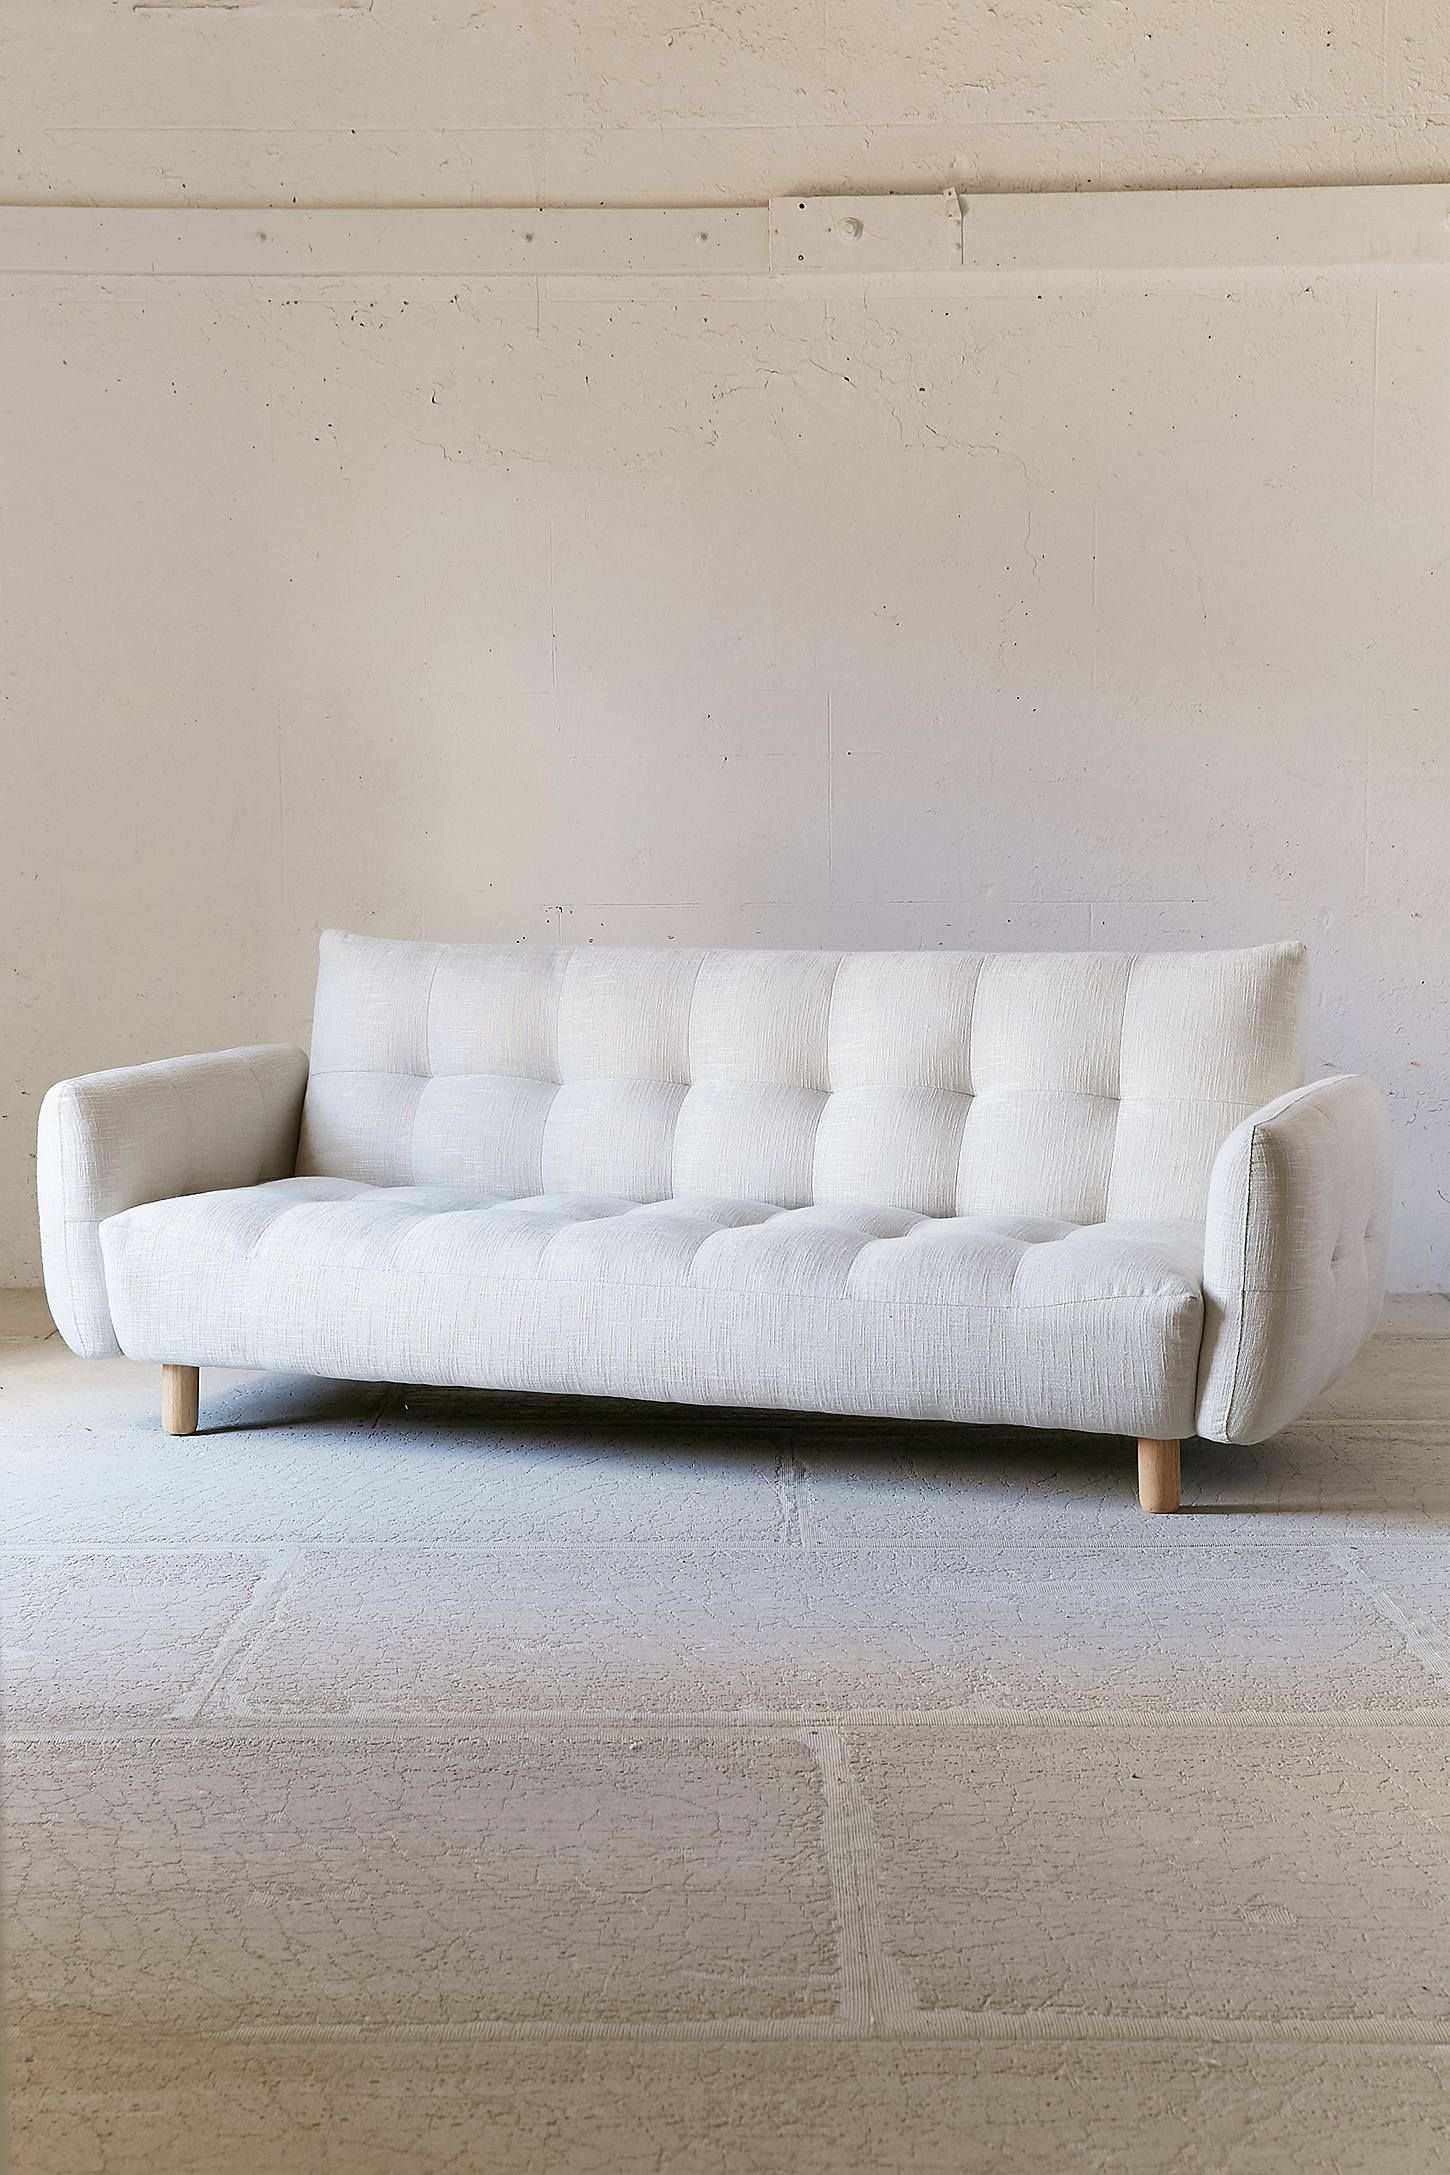 Shop The Winslow Sleeper Sofa And More Urban Outfitters At Urban